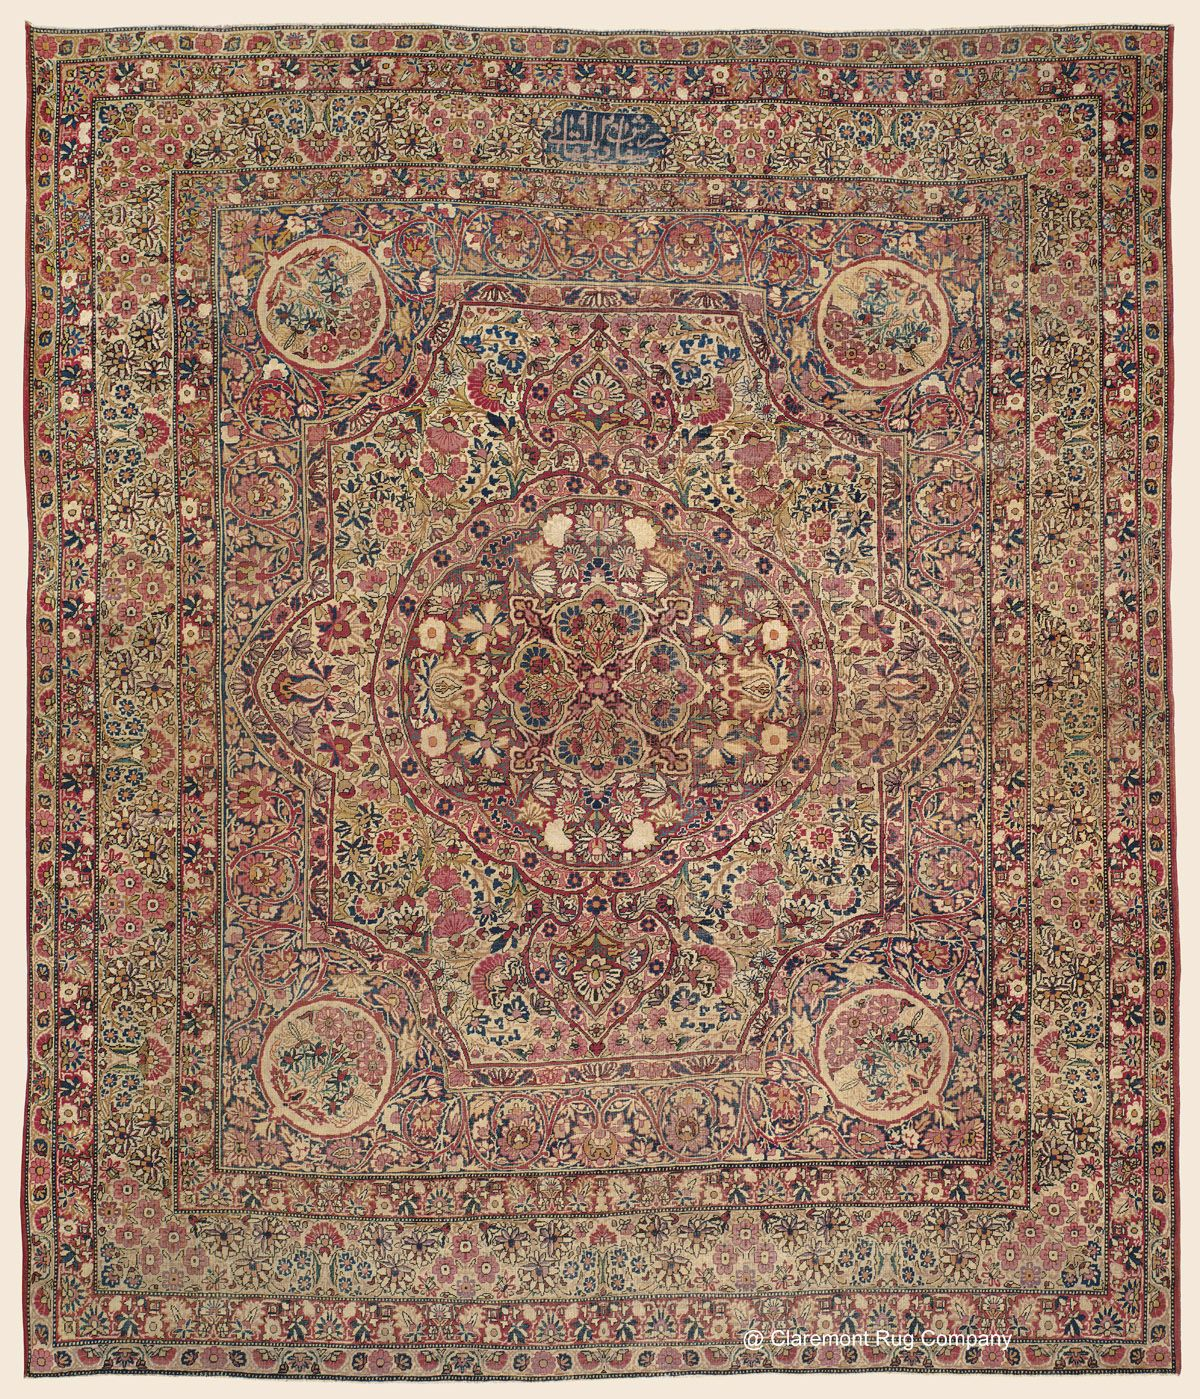 Laver Kirman Signed Dilmaghani 8 10 X 10 5 3rd Quarter 19th Century Southeast Persian Antique Rug Claremont Persian Carpet Rug Company Antique Rugs